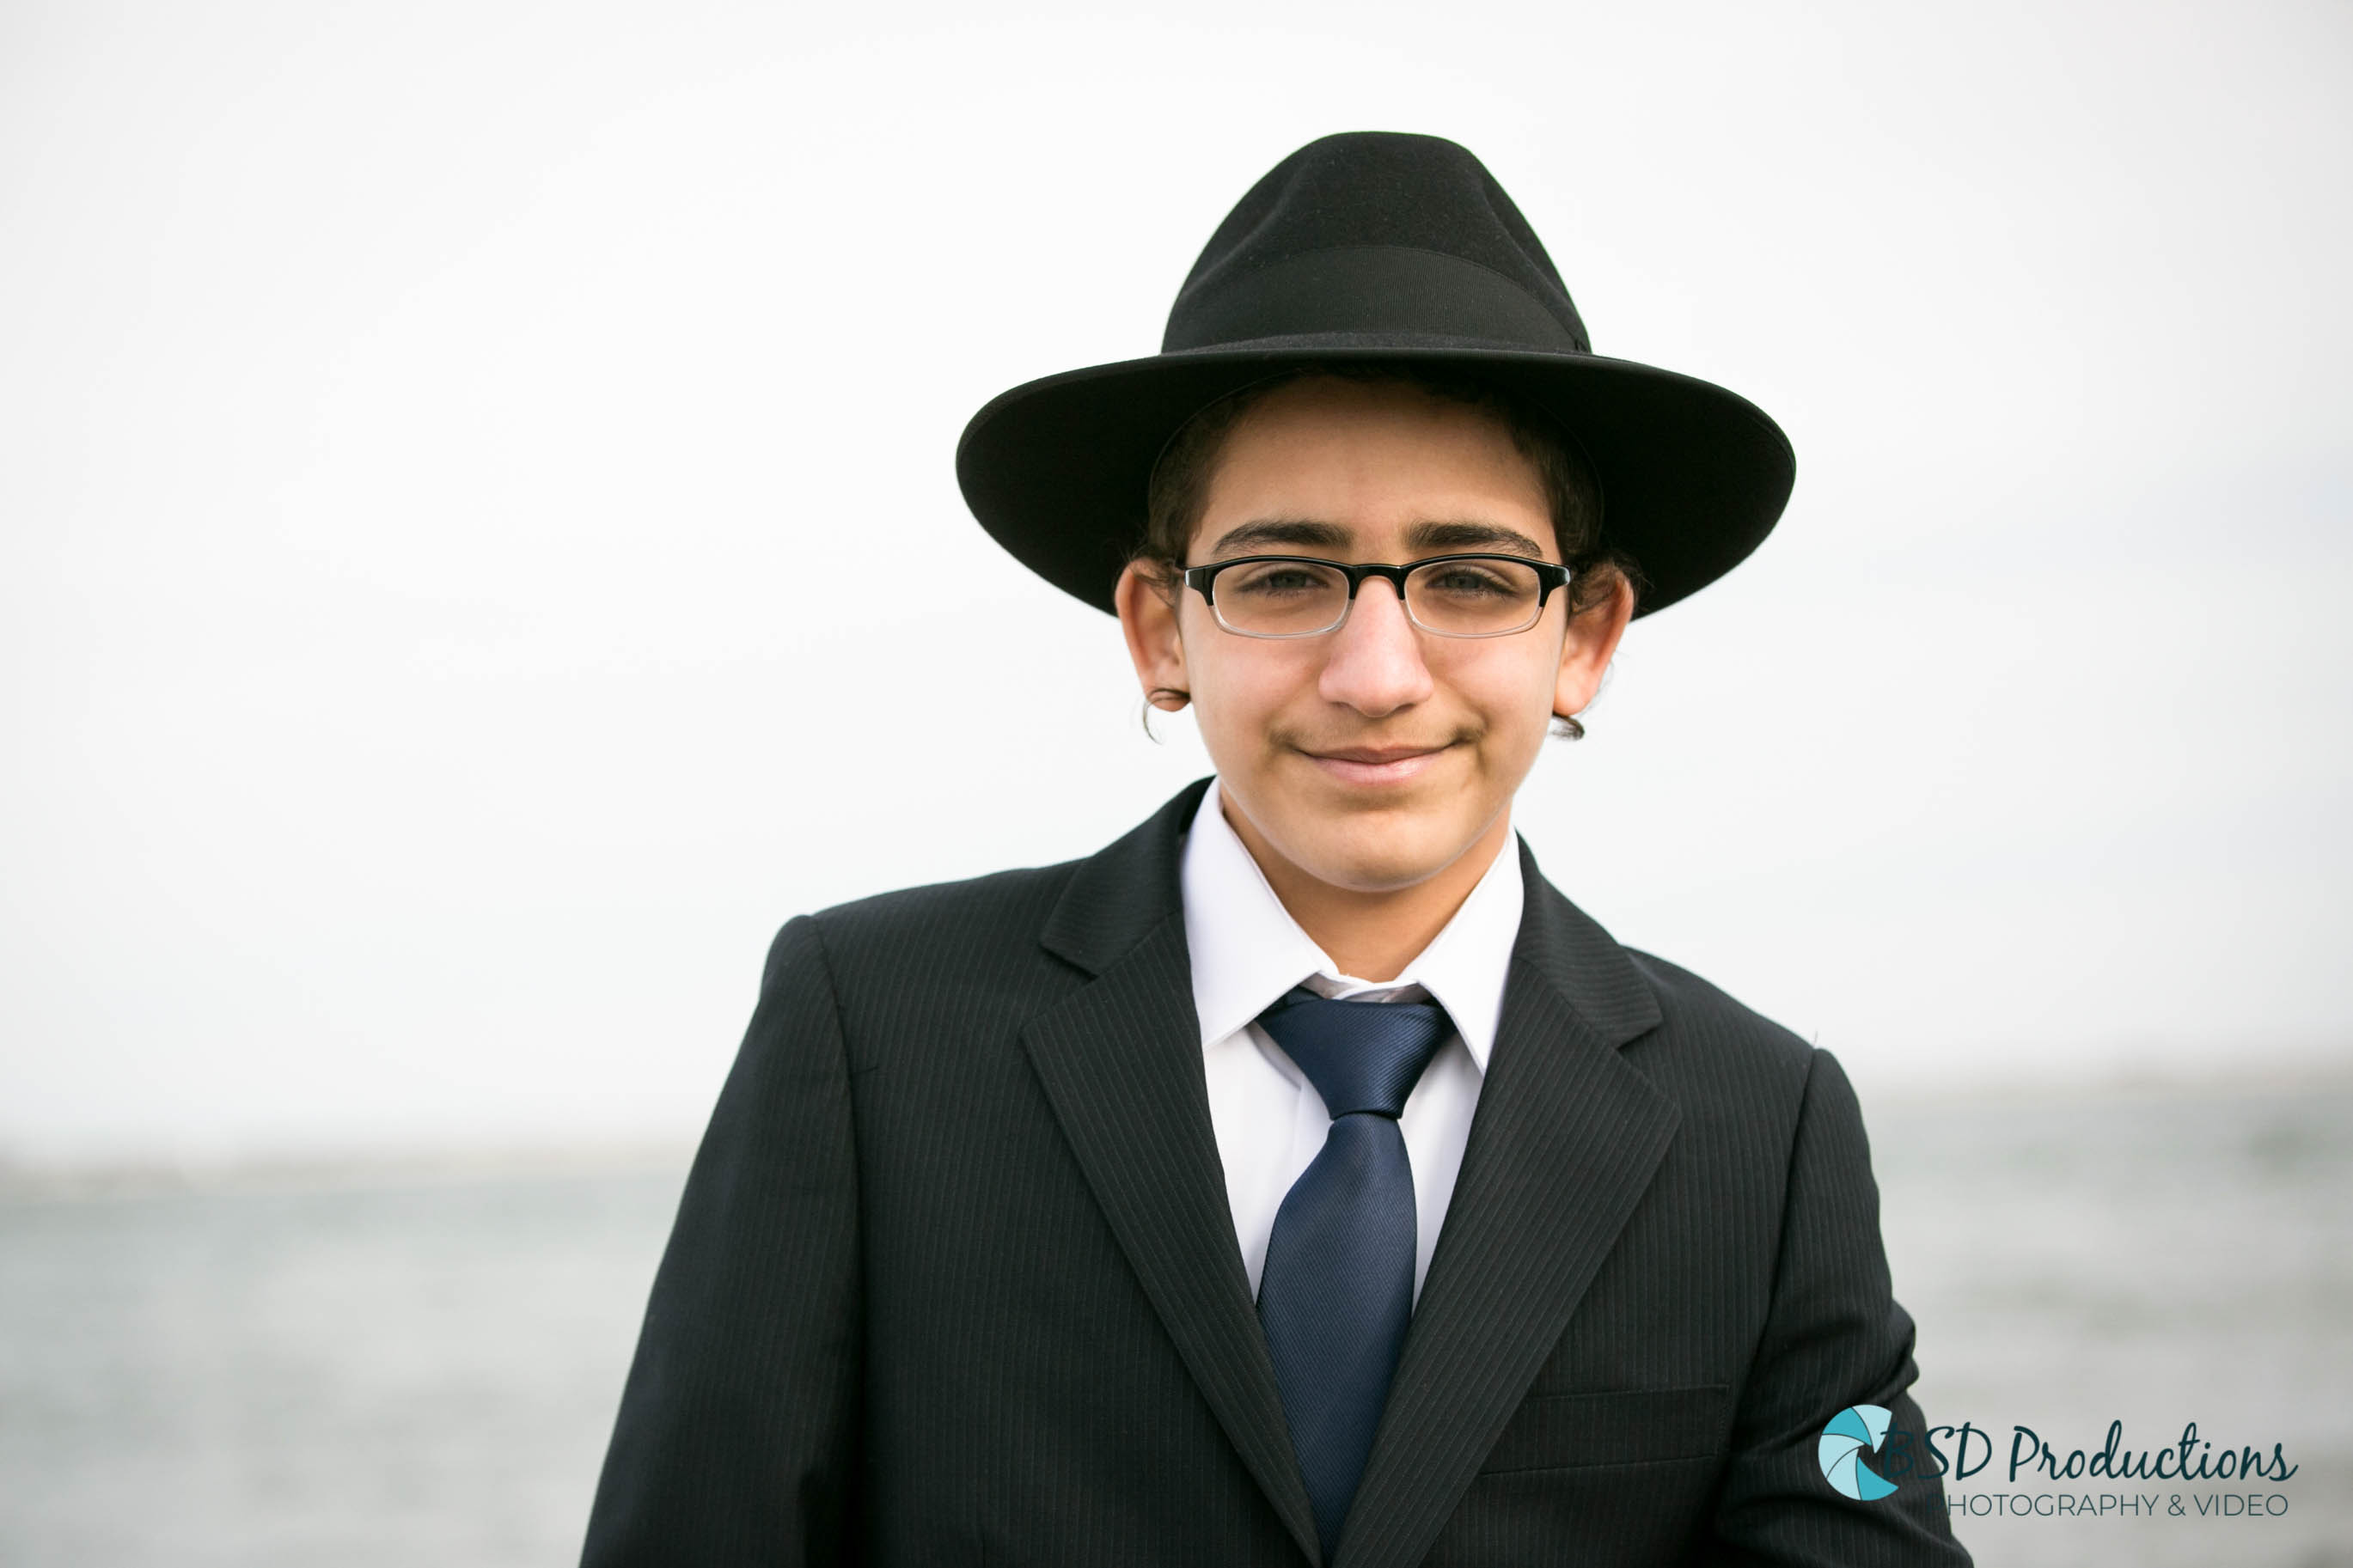 UH5A9126 Bar Mitzvah – BSD Productions Photography